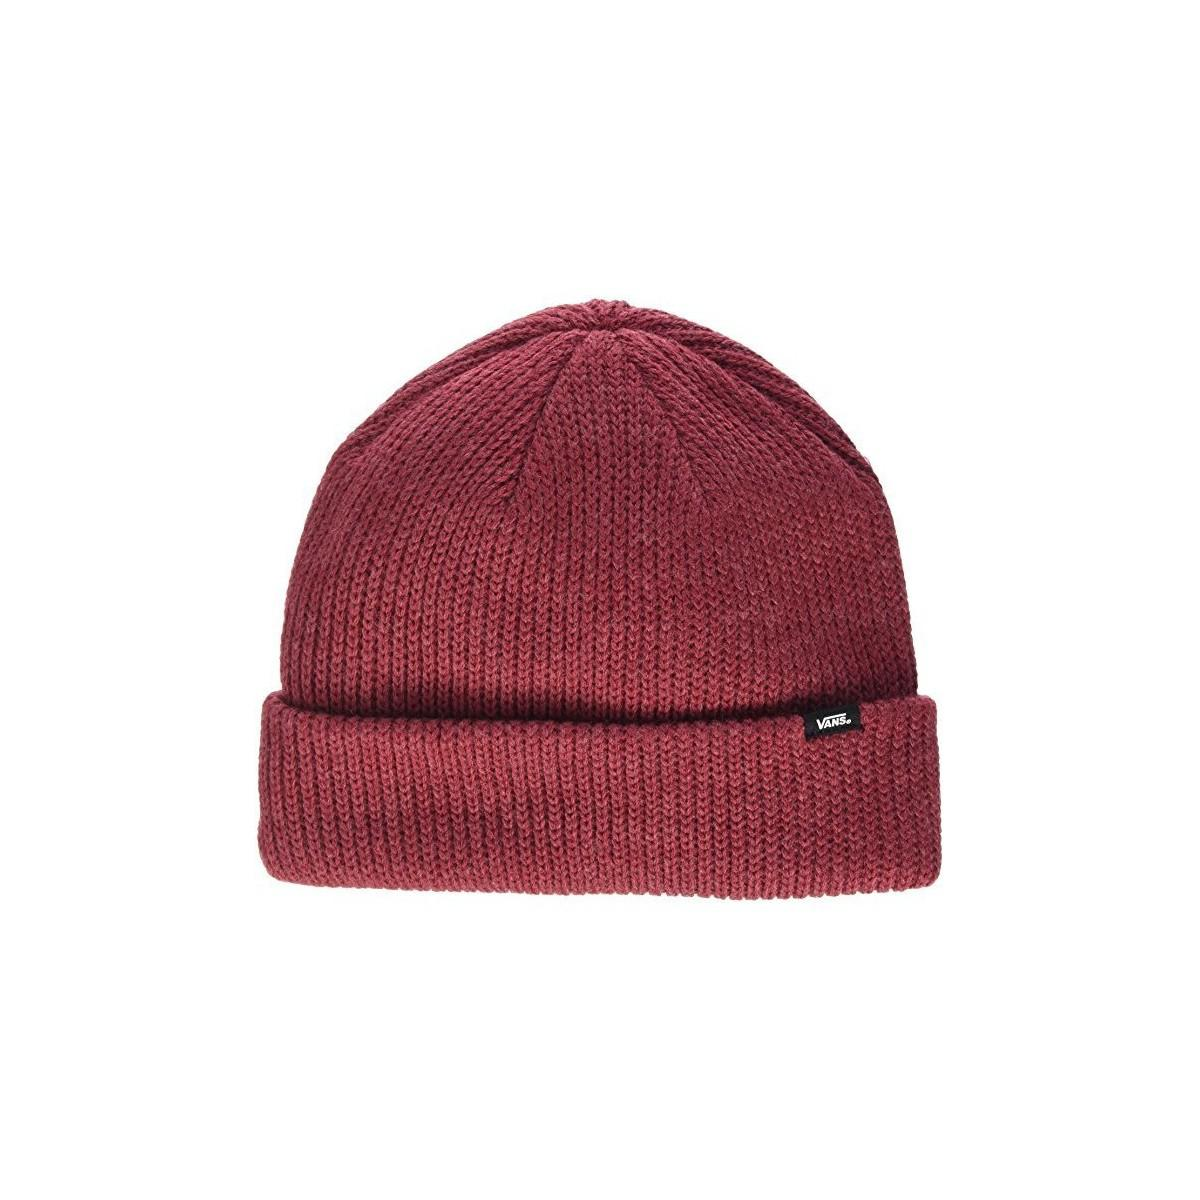 678a8f810b6 ... Vans Gorro Core Basic Wmns Womens Beanie In Red in Red - Lys lace up in  ...